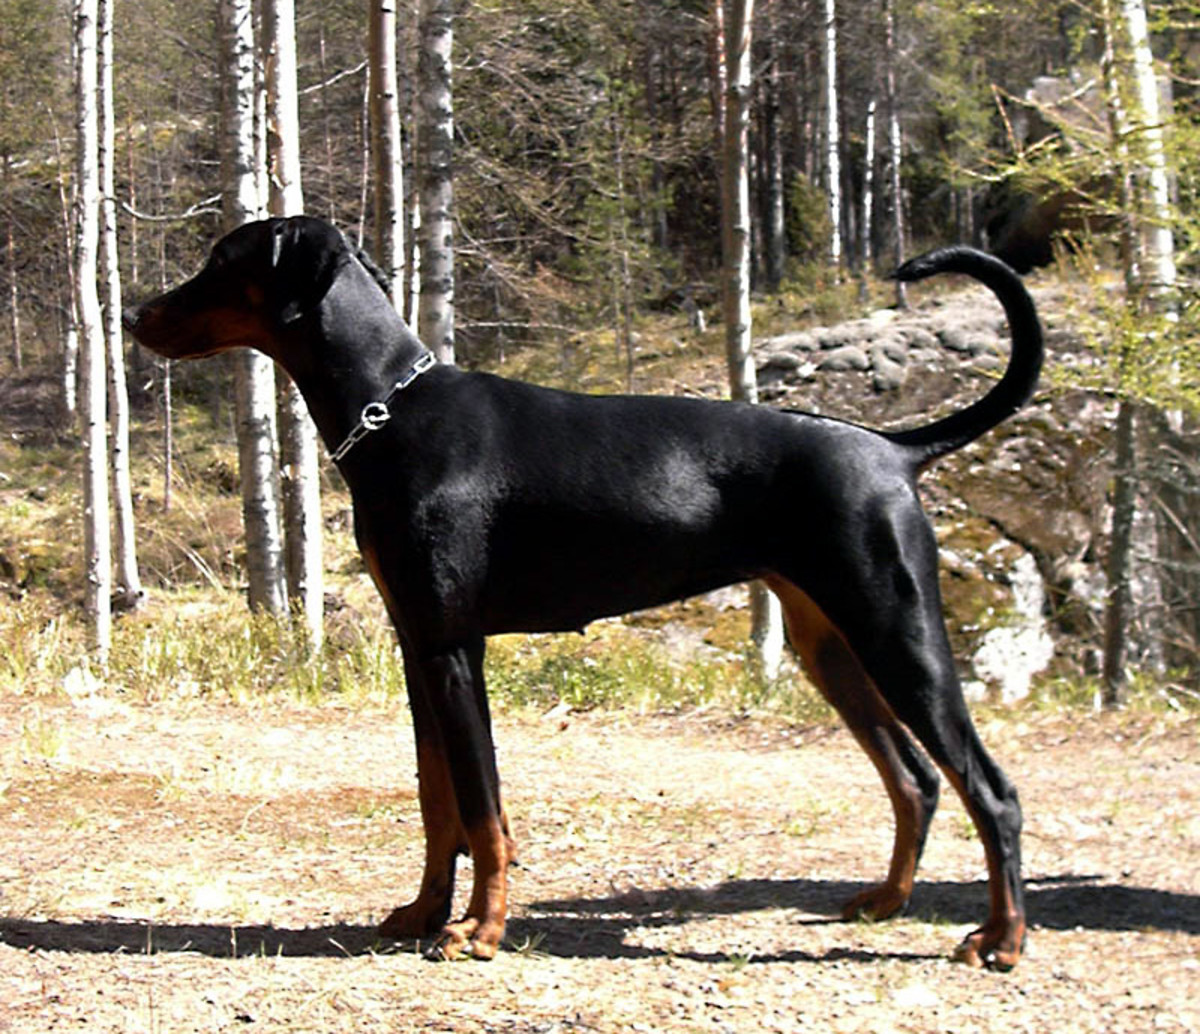 This first photo is of a natural Doberman Pinscher, sometimes considered unrecognizable because of its drastically different overall shape.